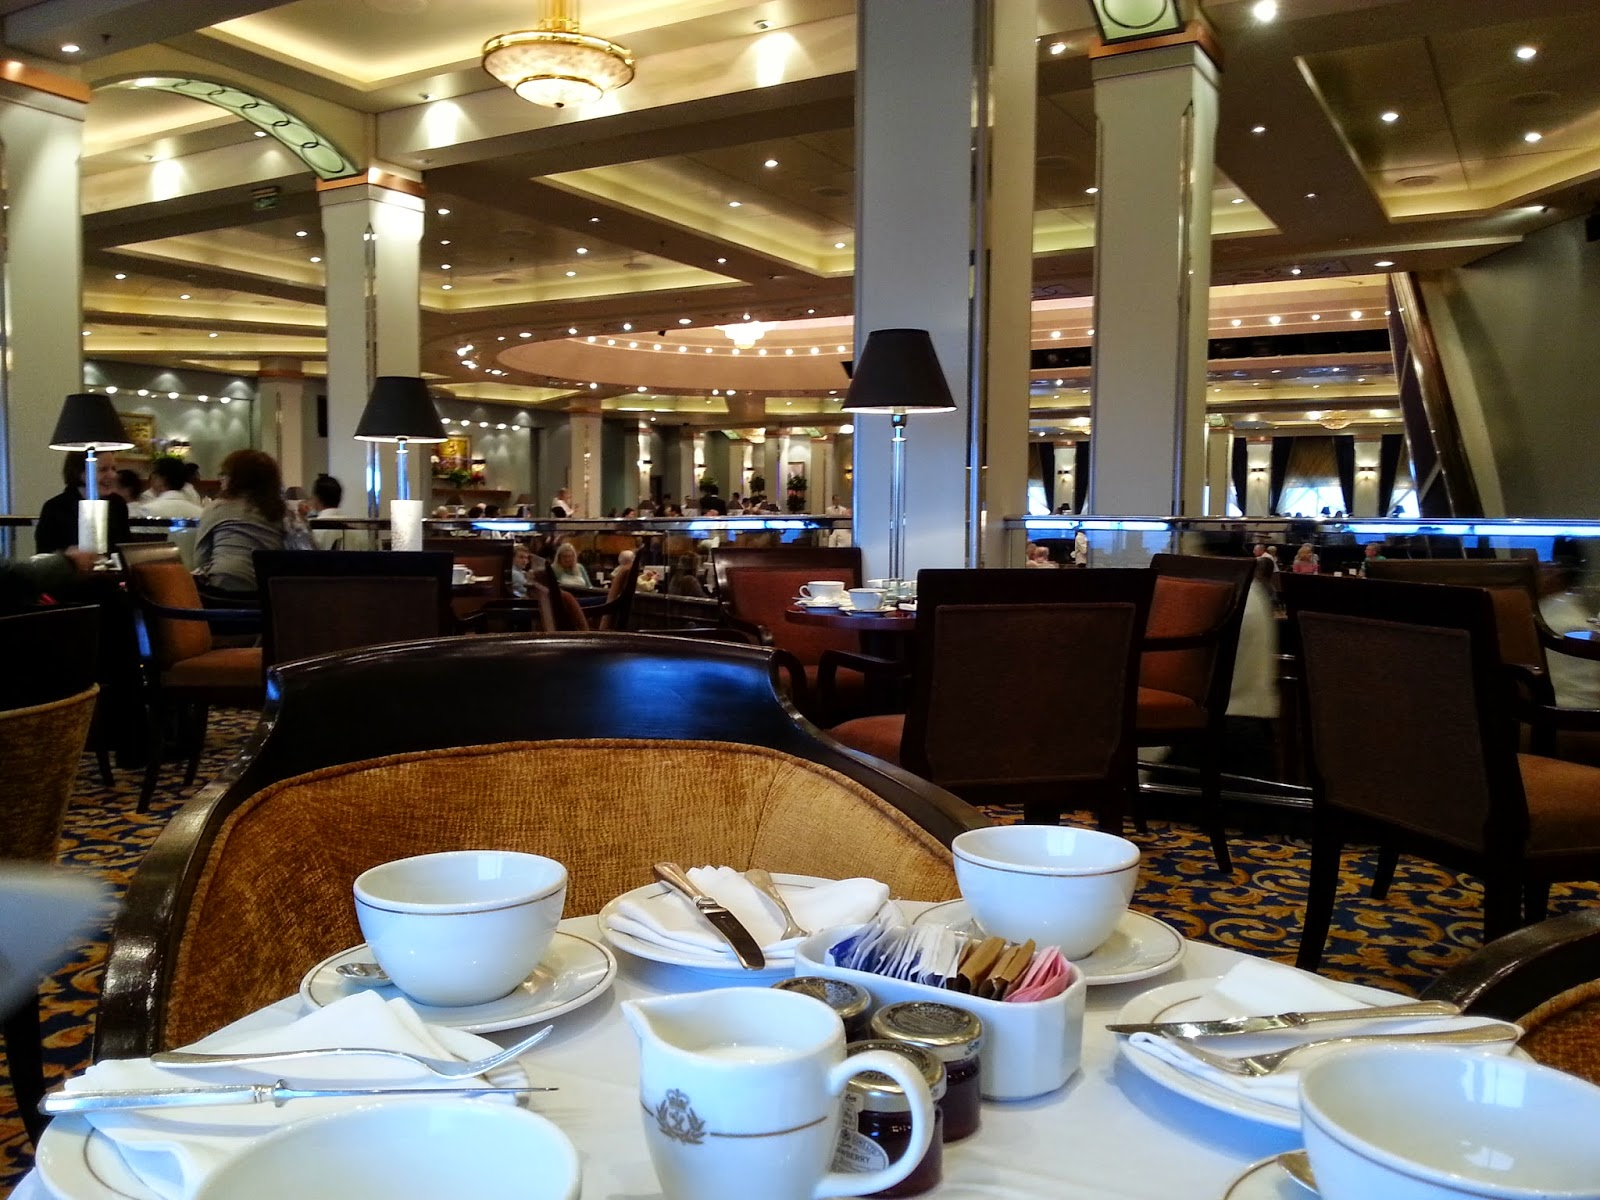 Queen Mary 2 (QM2) - Afternoon Tea in the Queens Room